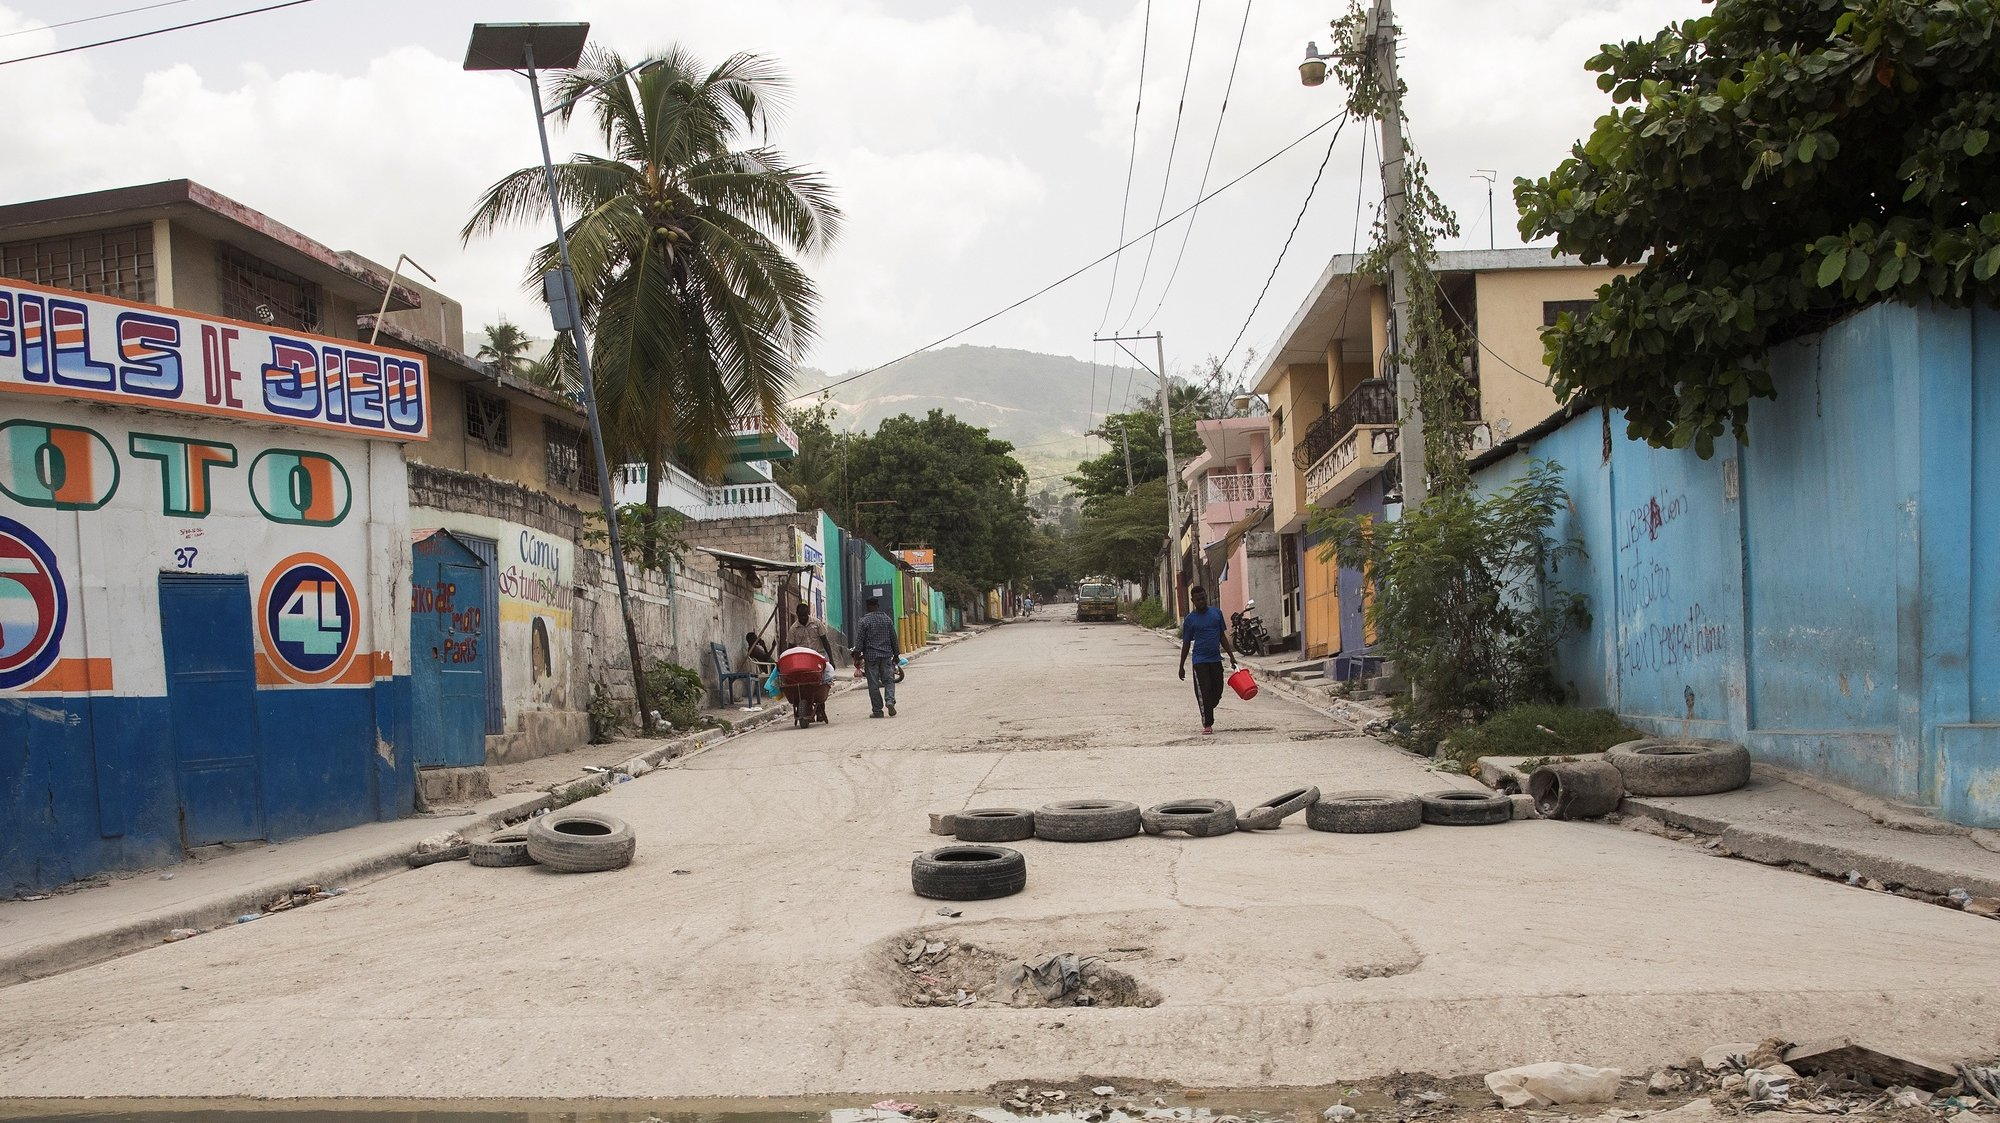 epa09428242 A street in the Martissant neighborhood, a neighborhood controlled by armed gangs, in Port-au-Prince, Haiti, 24 August 2021. The main armed gangs in Haiti affirmed two days ago that they have accepted a truce to allow the distribution of humanitarian aid to the thousands affected by the 7.2 magnitude earthquake of 14 August. Insecurity has been one of the main complications in getting aid to south-west Haiti, especially due to the presence of armed gangs in the Martissant neighborhood, a neighborhood that has to be passed by land to reach that area.  EPA/Orlando Barria